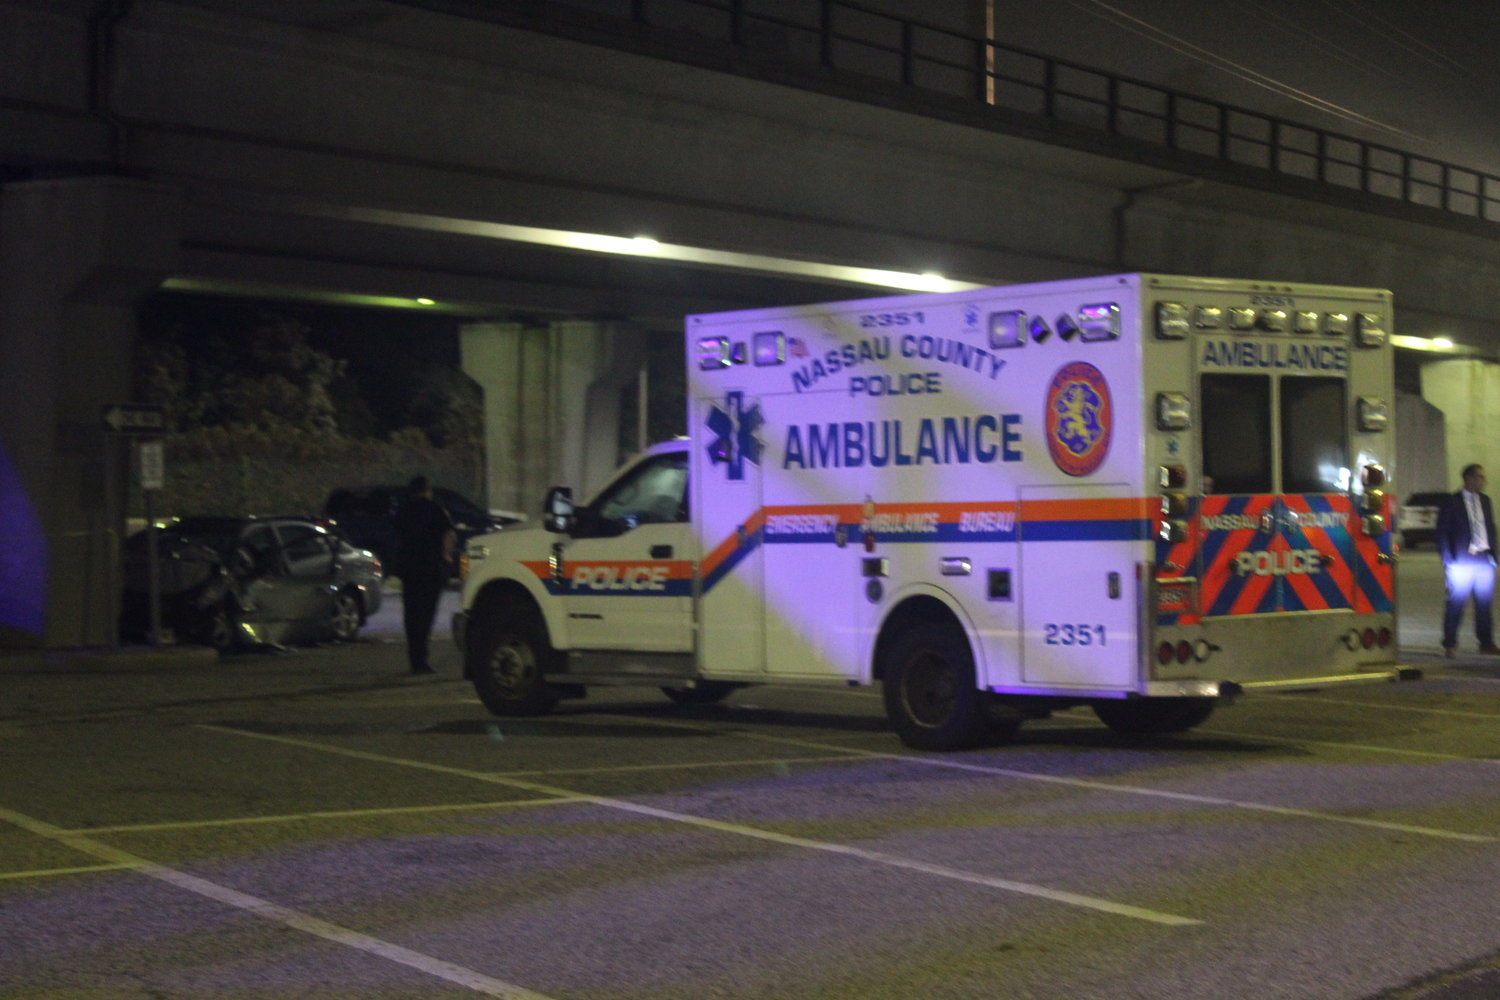 Nassau County police are investigating a fatal car accident that occurred on Tuesday night at the Long Island Rail Road station in Merrick.